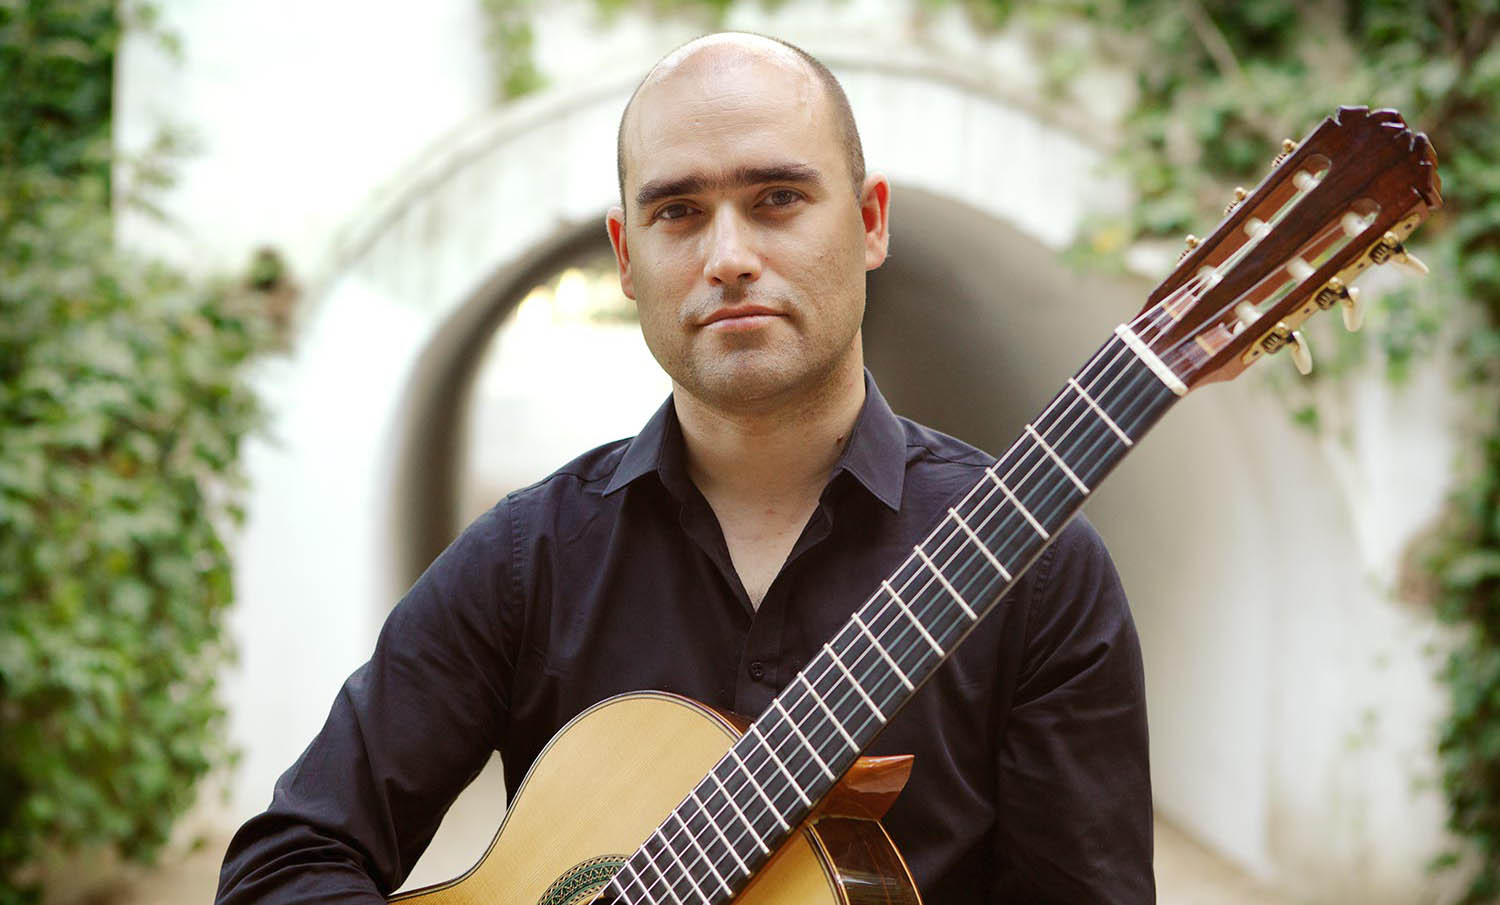 francisco-javier-jauregui-classical-guitarist